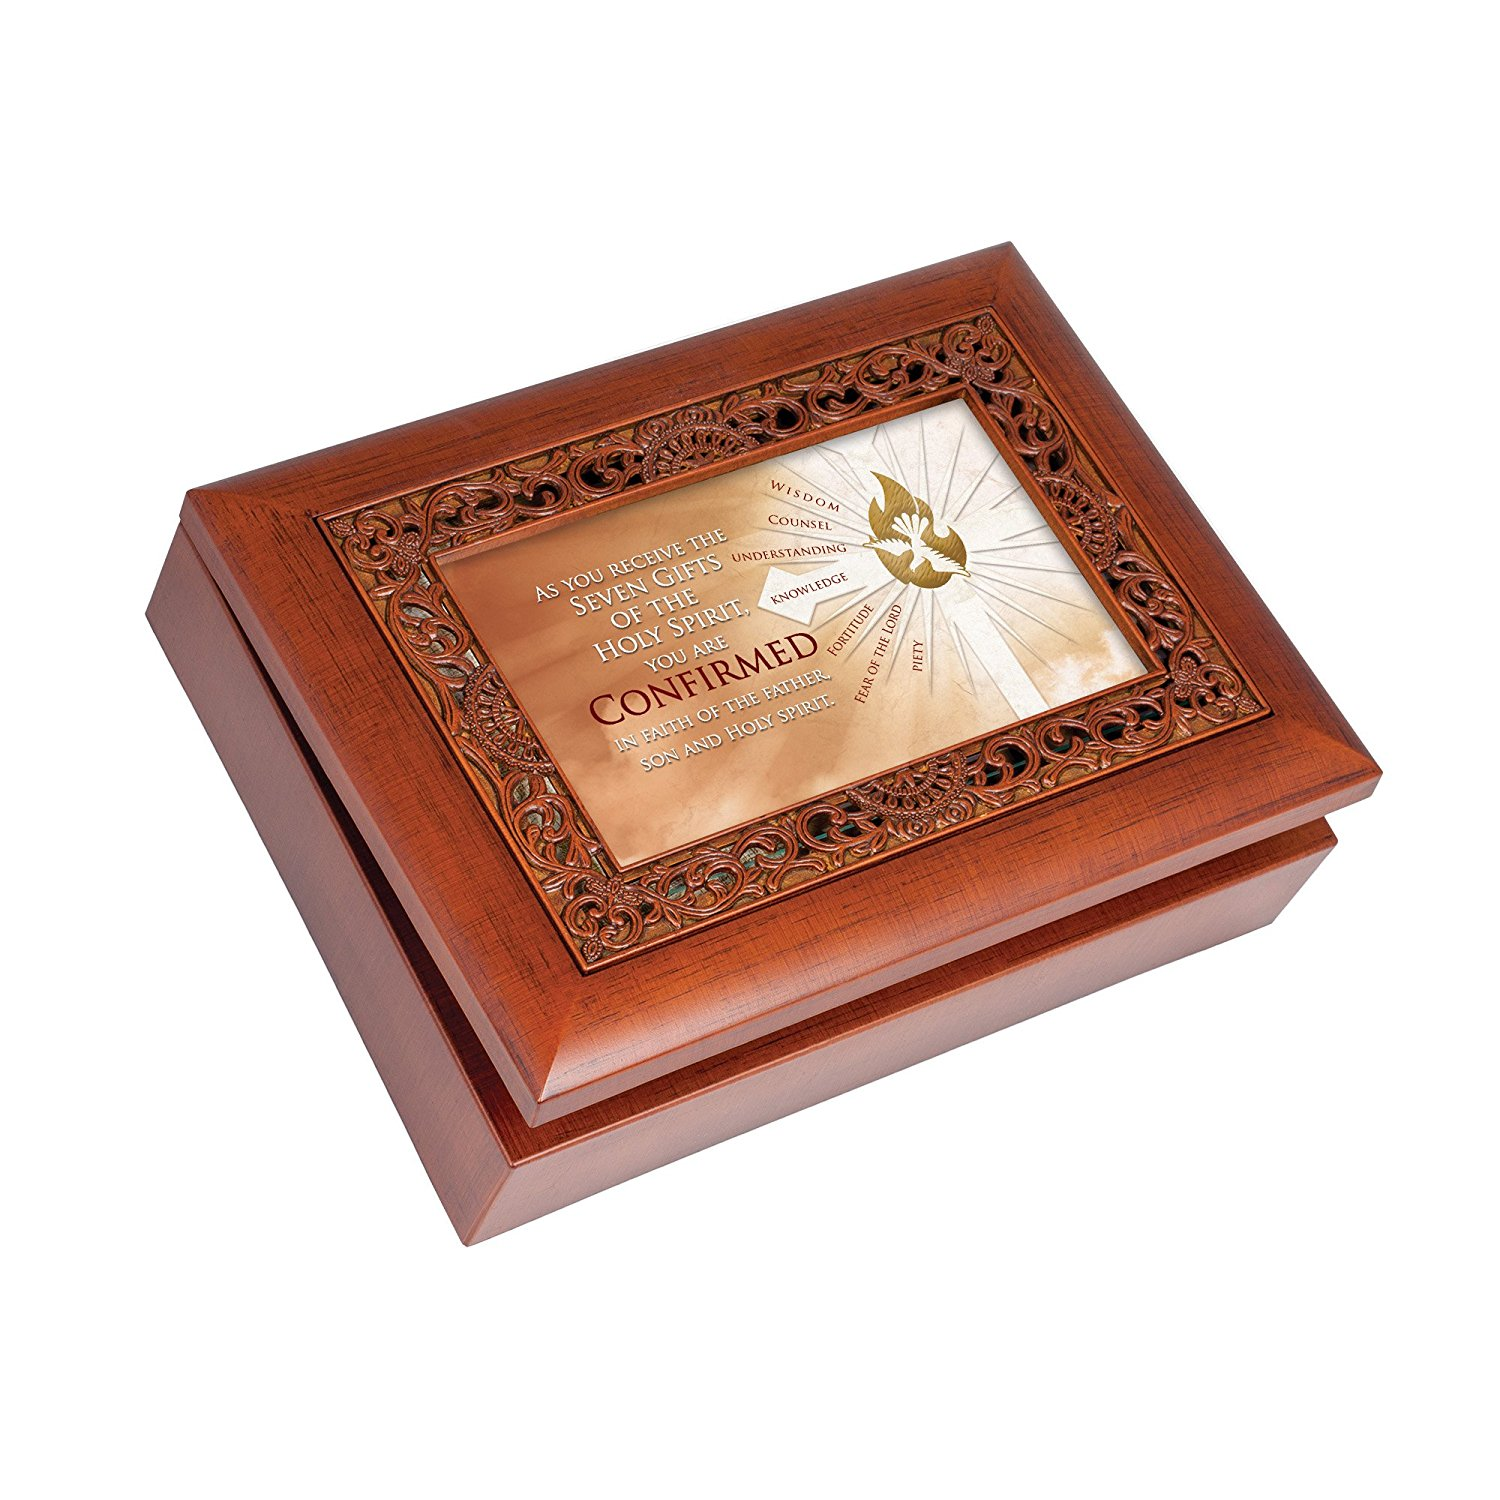 Seven Gifts Holy Spirit Confirmed Wood Finish Ornate Jewelry Music Box Plays We Have a Friend